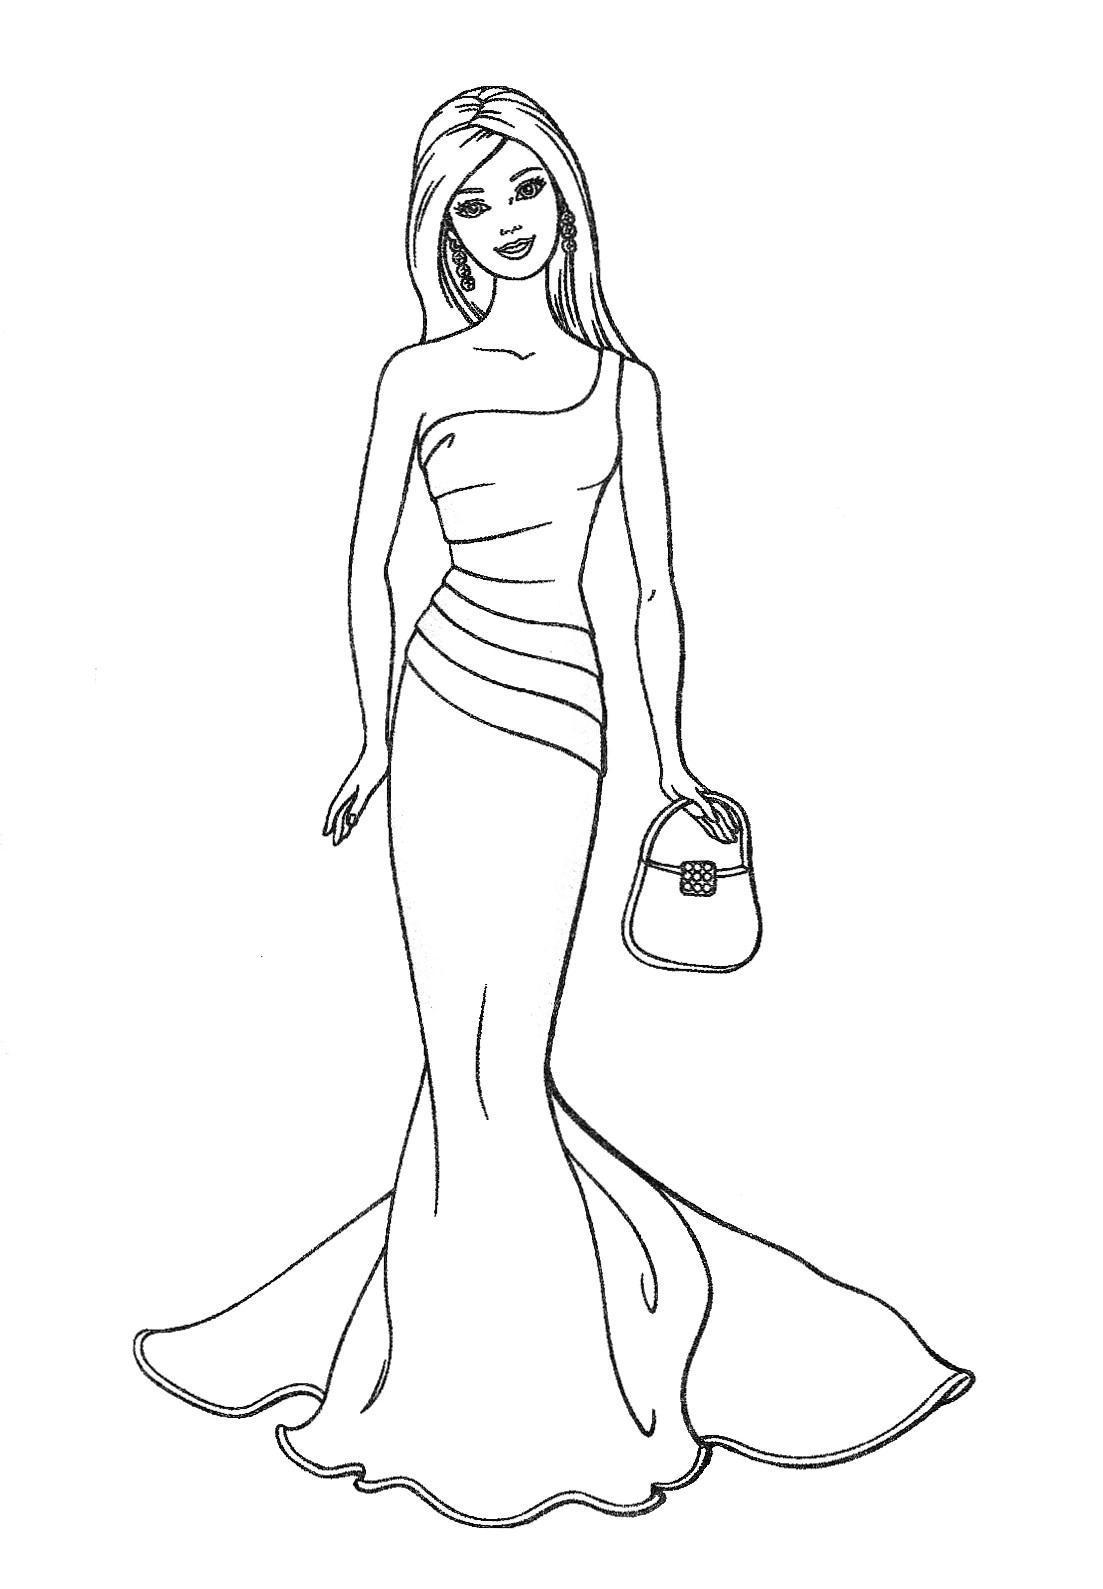 barbie coloring pages - Barbie Movies Photo (19453601) - Fanpop